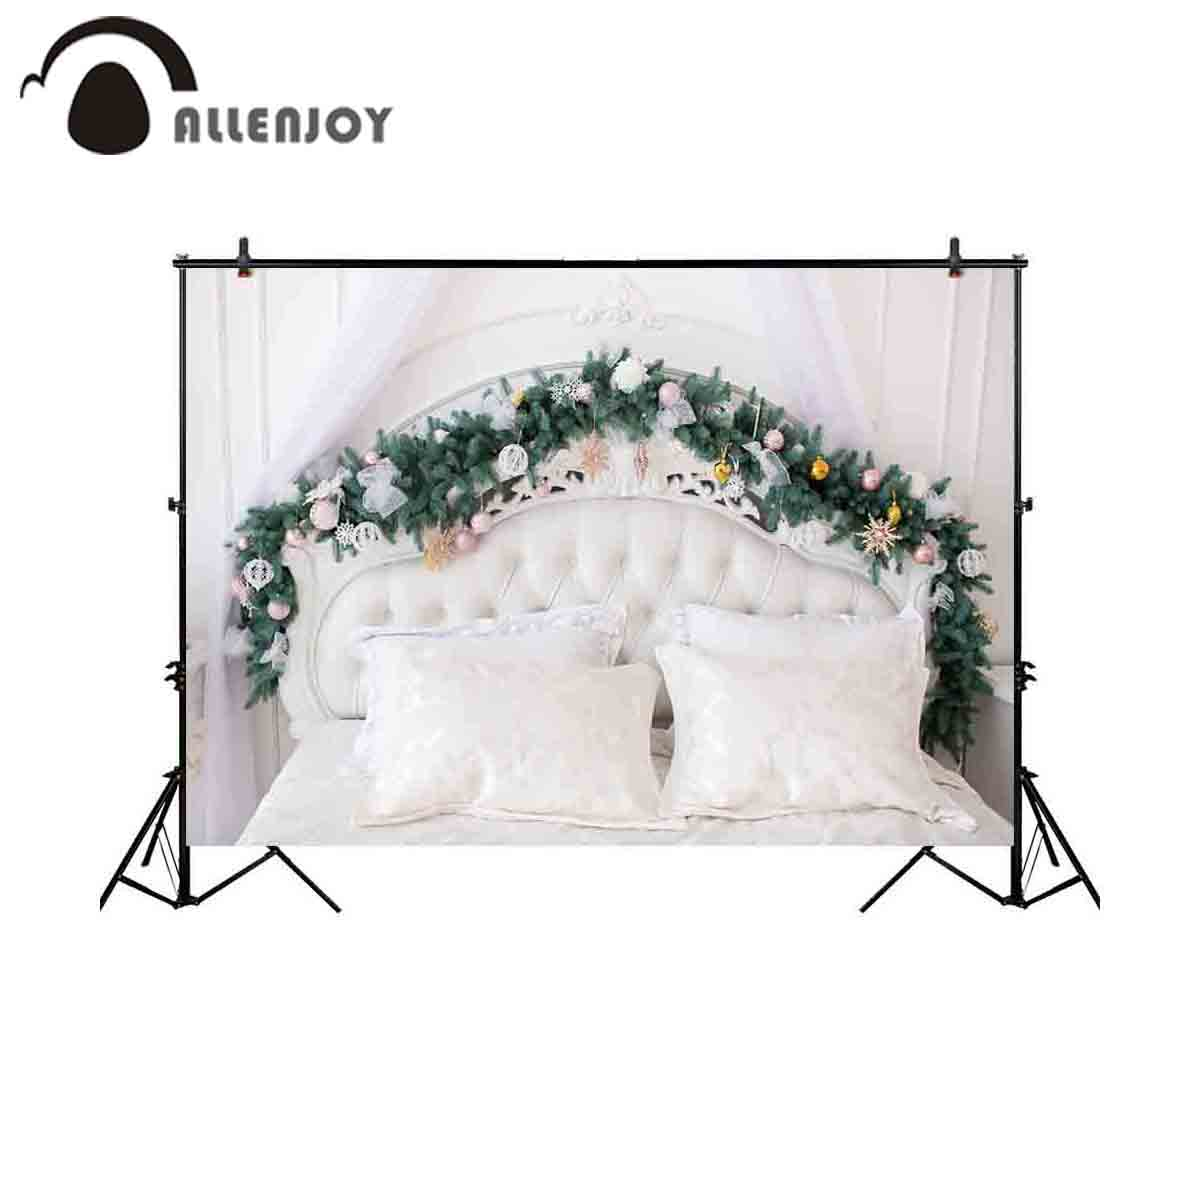 Allenjoy photography background Christmas headboard tufted pine tree leaf backdrop photocall photo studio photobooth fabric allenjoy photo backdrops blue vintage wood wall photo studio props photobooth photocall fantasy background newborn